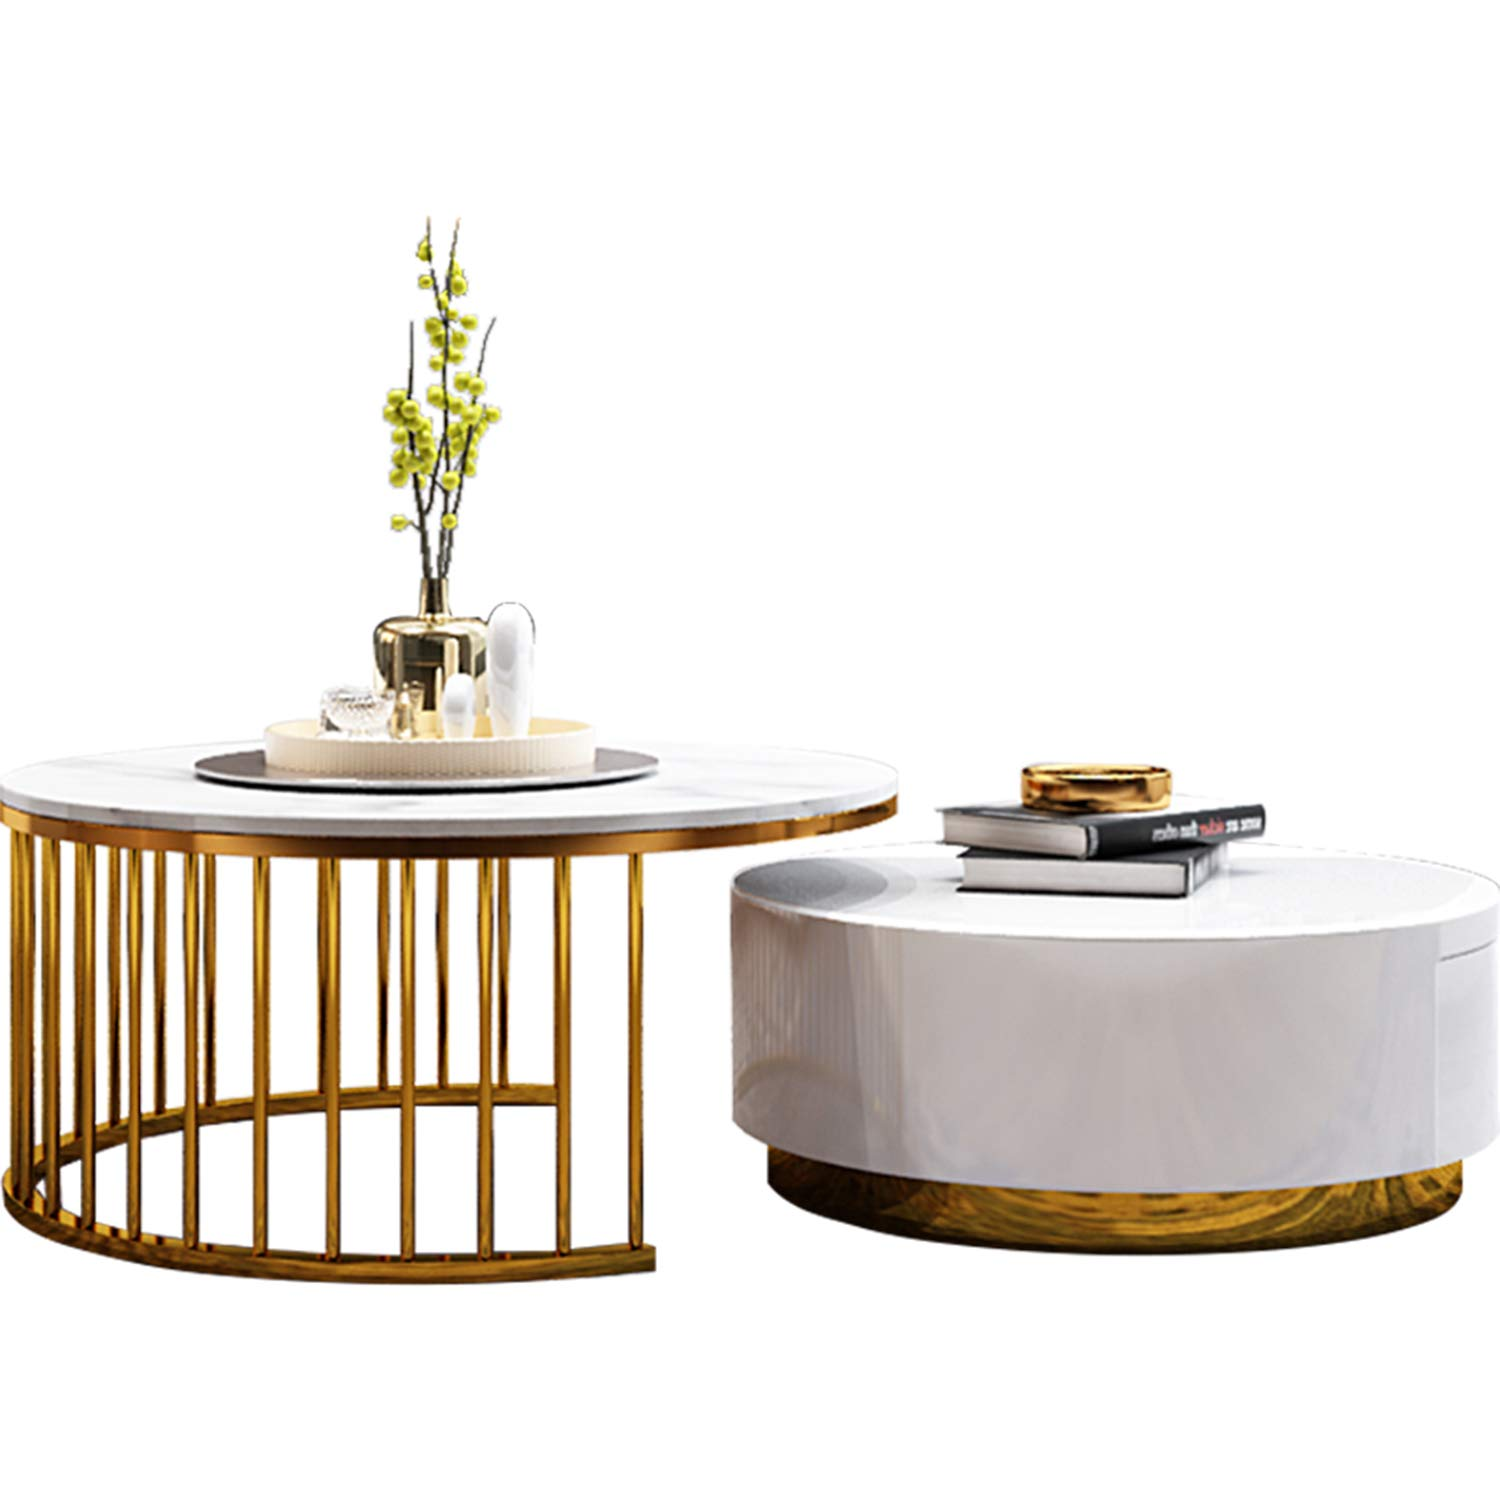 Merveilleux Amazon.com: WSXX Simple Tea Table, Living Room High And Low Round Coffee  Table, Modern Home Marble Coffee Table: Home U0026 Kitchen